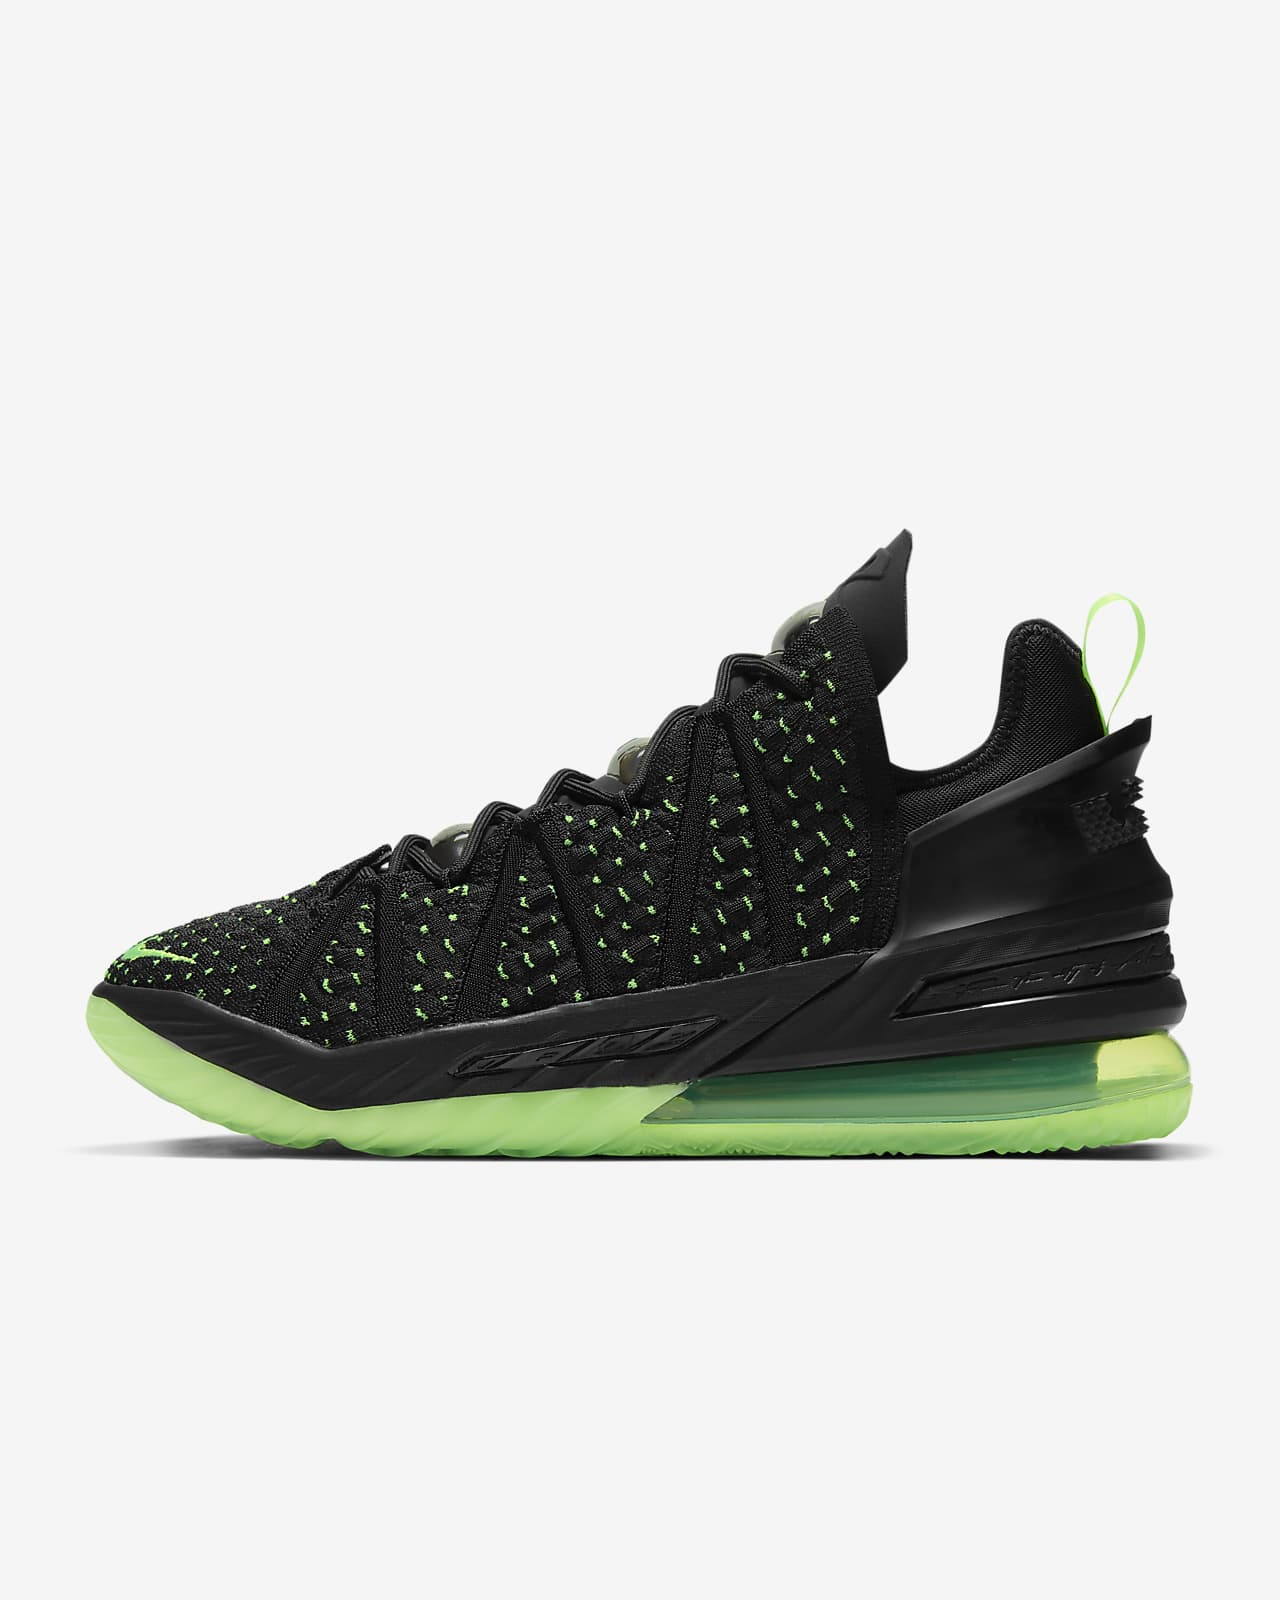 Chaussure de basketball LeBron 18 « Black/Electric Green »